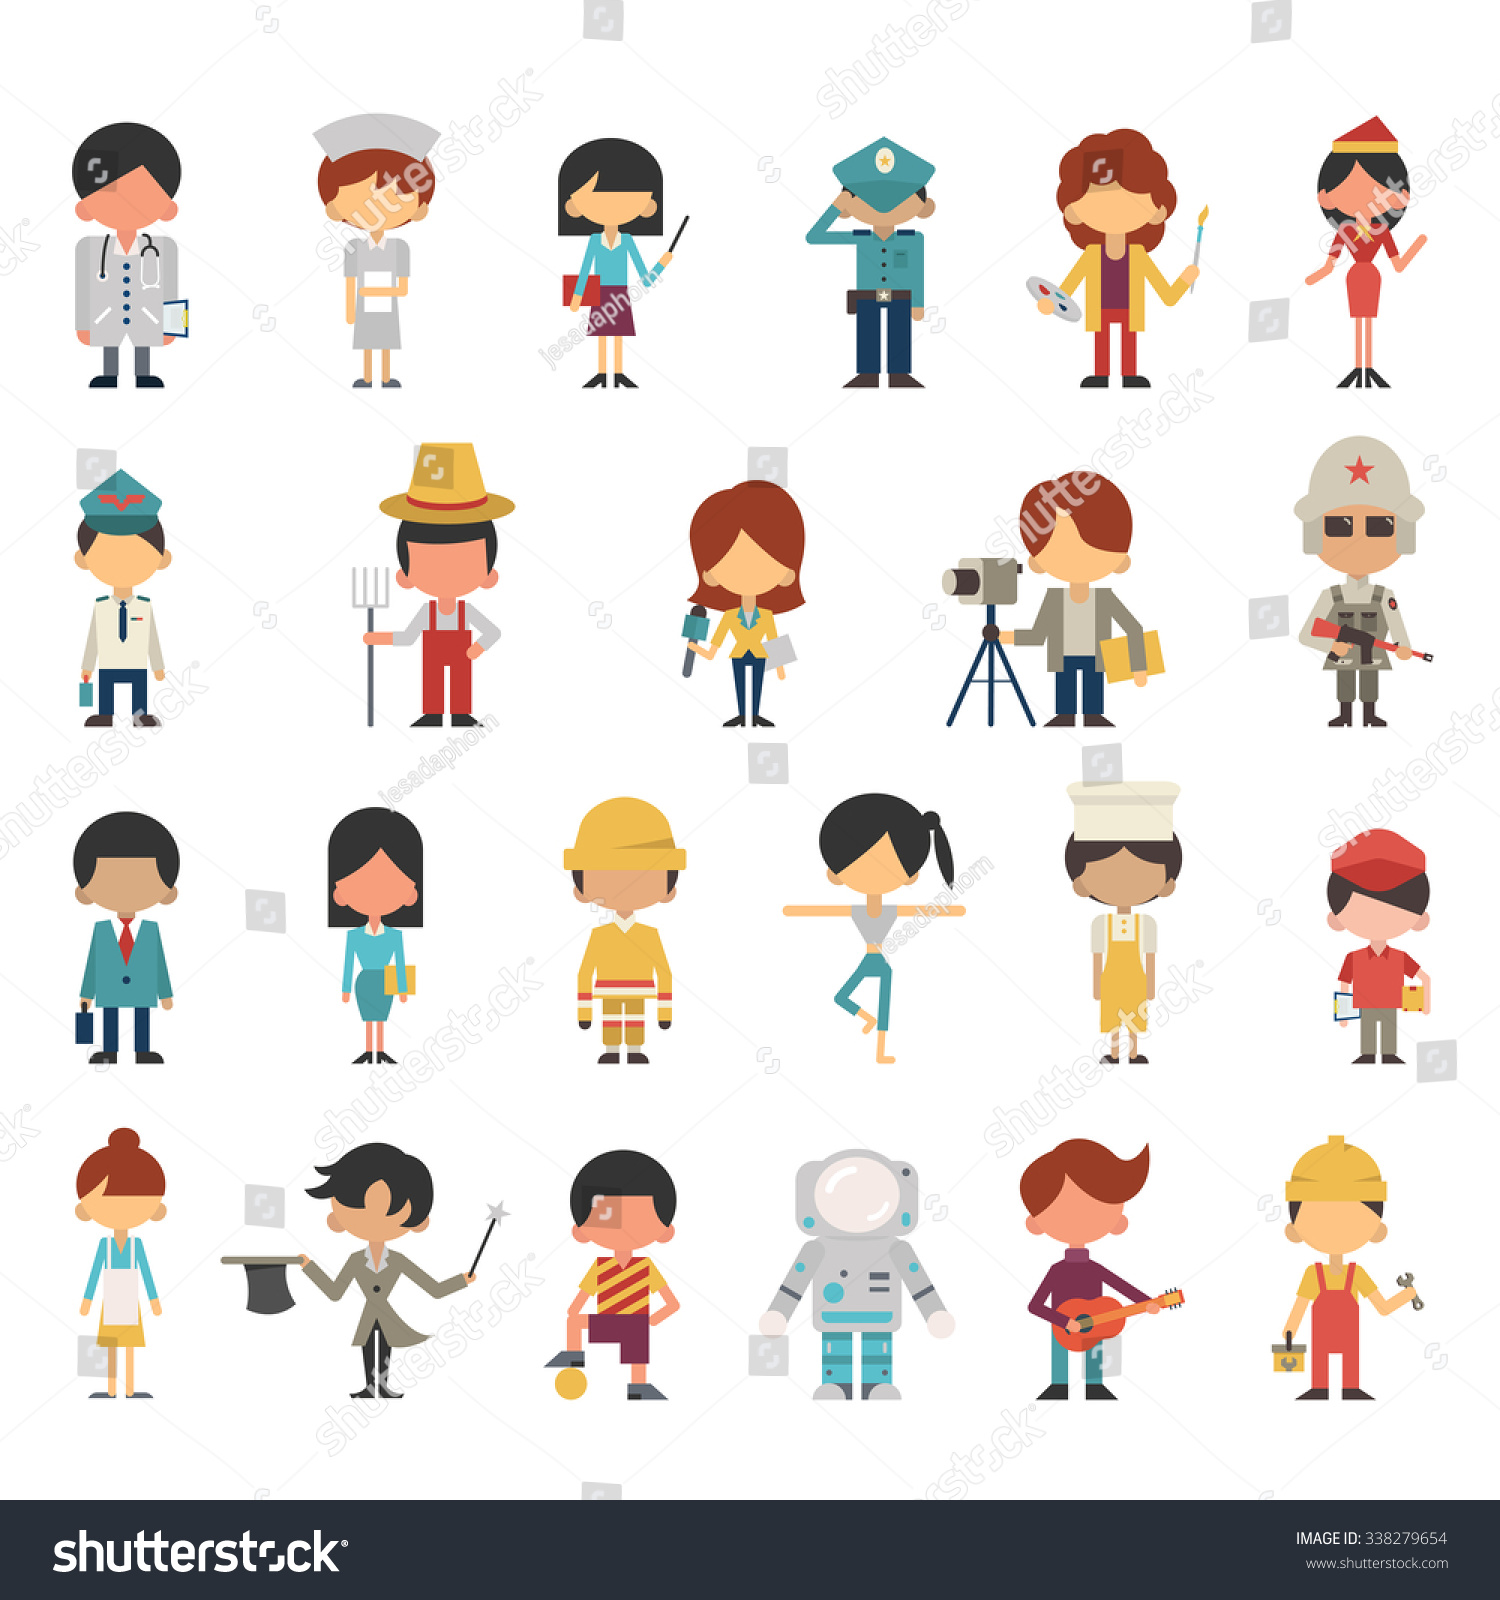 Simple Character Design Illustrator : Illustration characters kids children various occupations